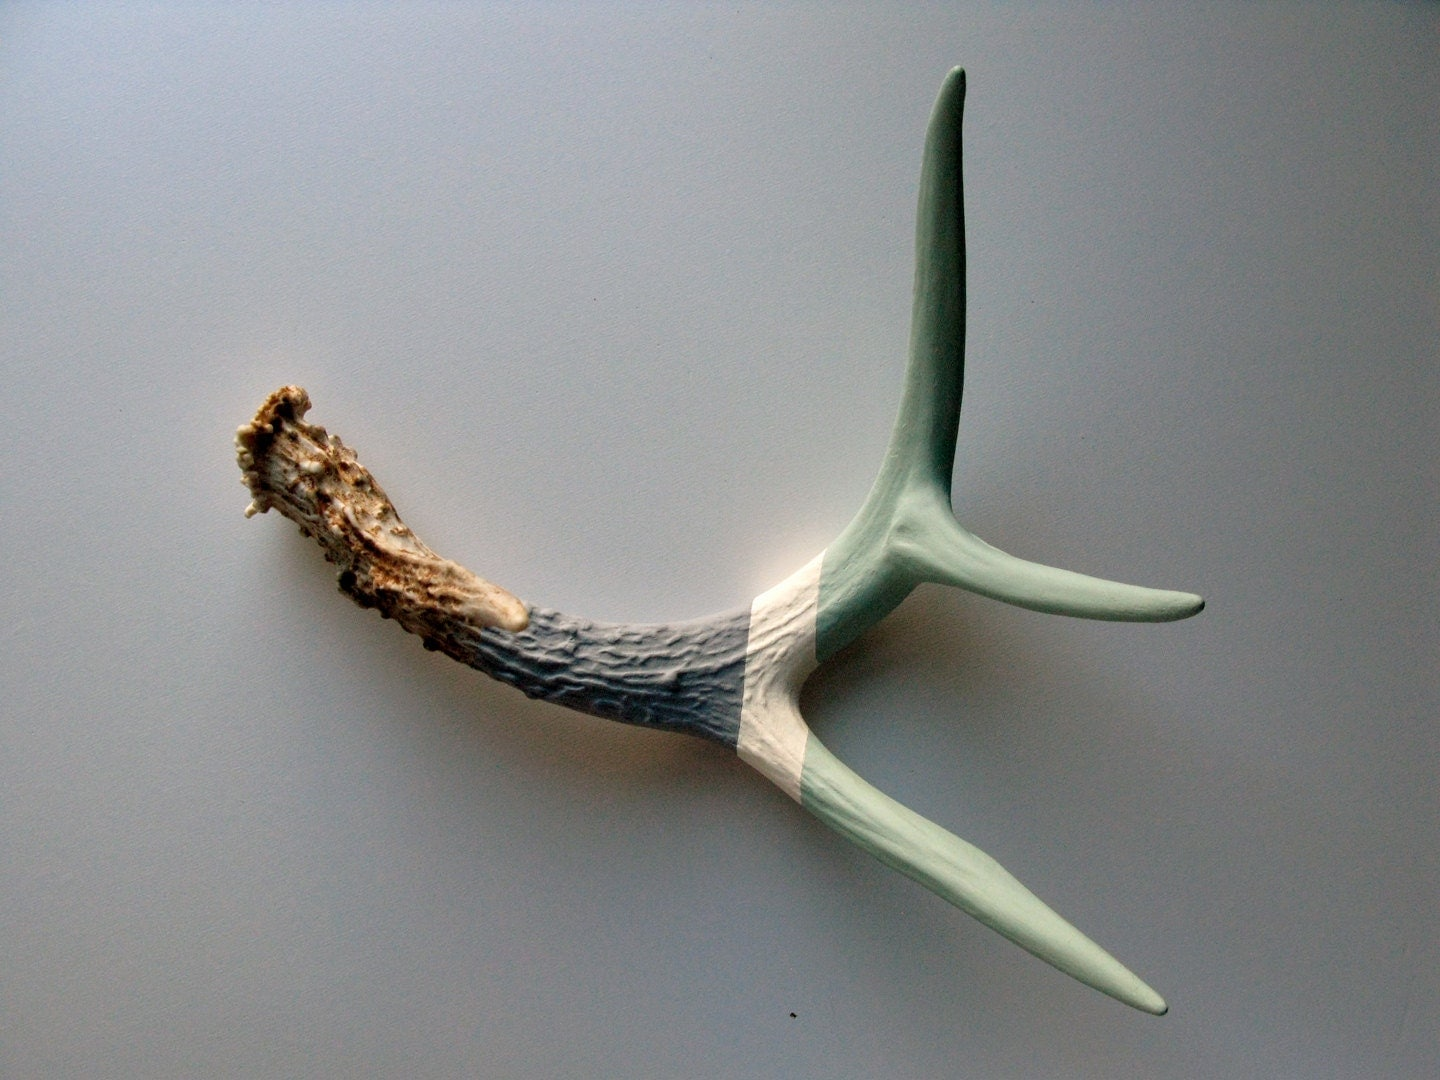 Seafoam, White & Gray Striped Painted Antler - Medium